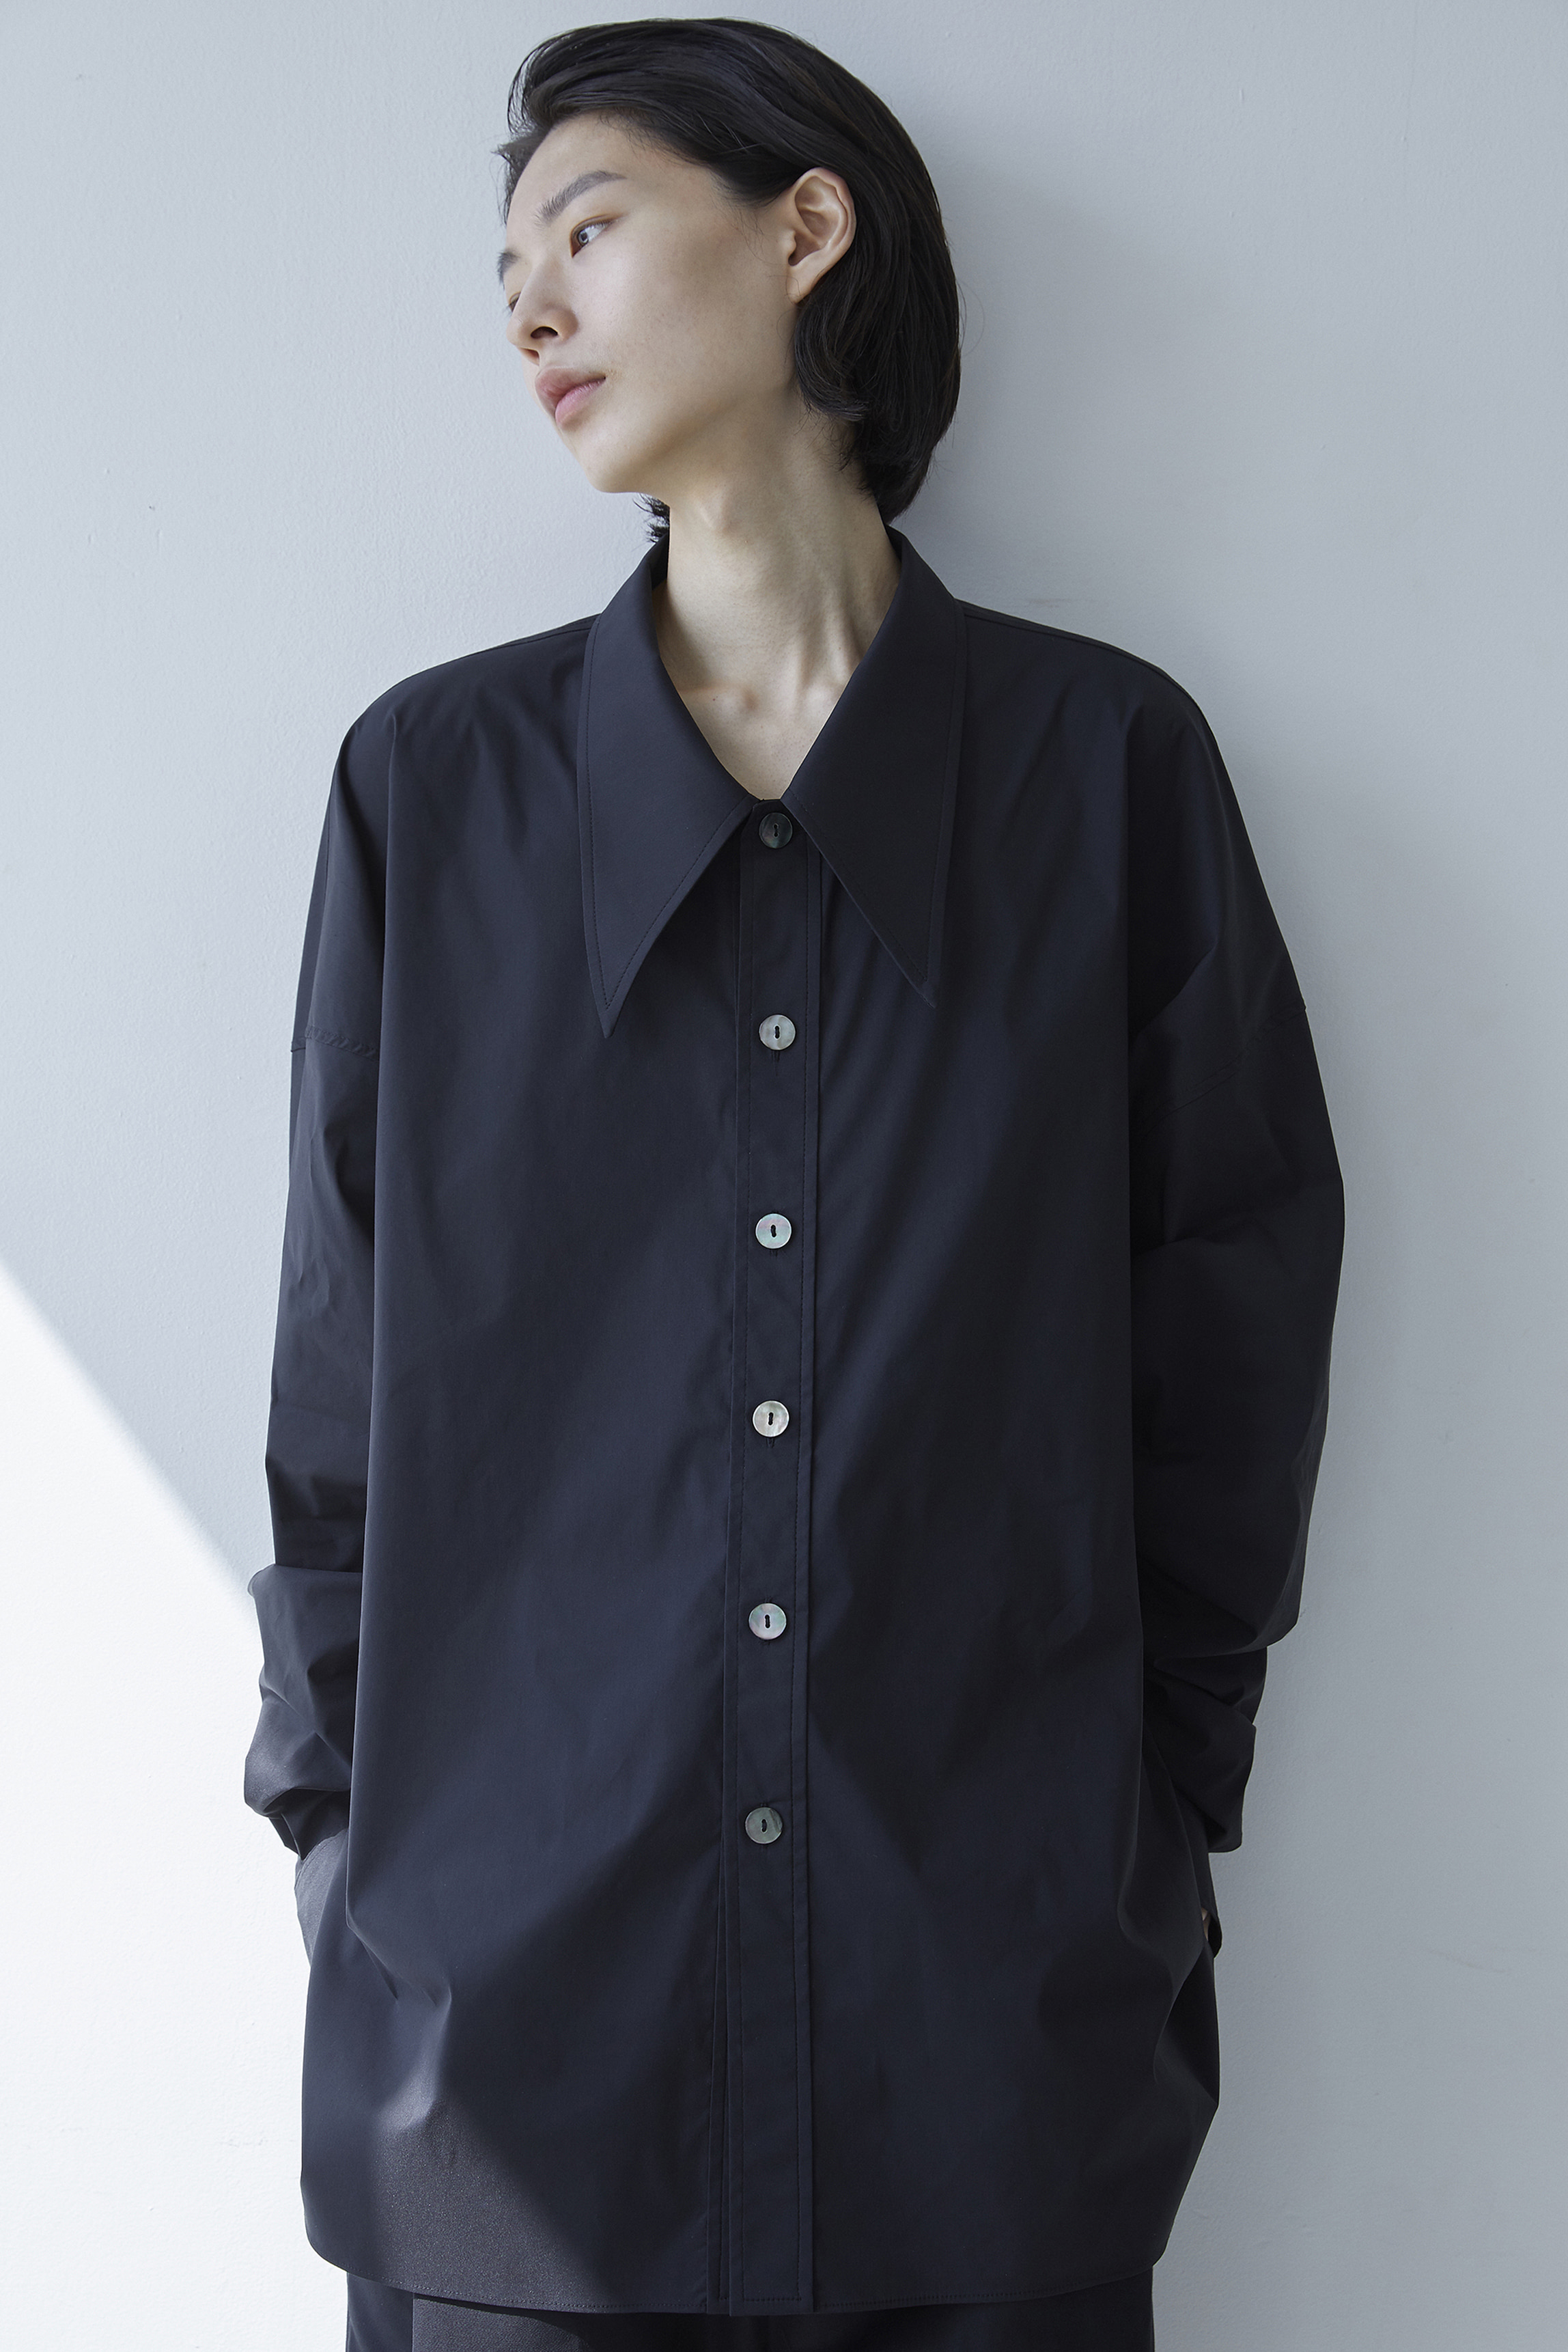 S008 / Shirring Big Collar Over Black Shirts